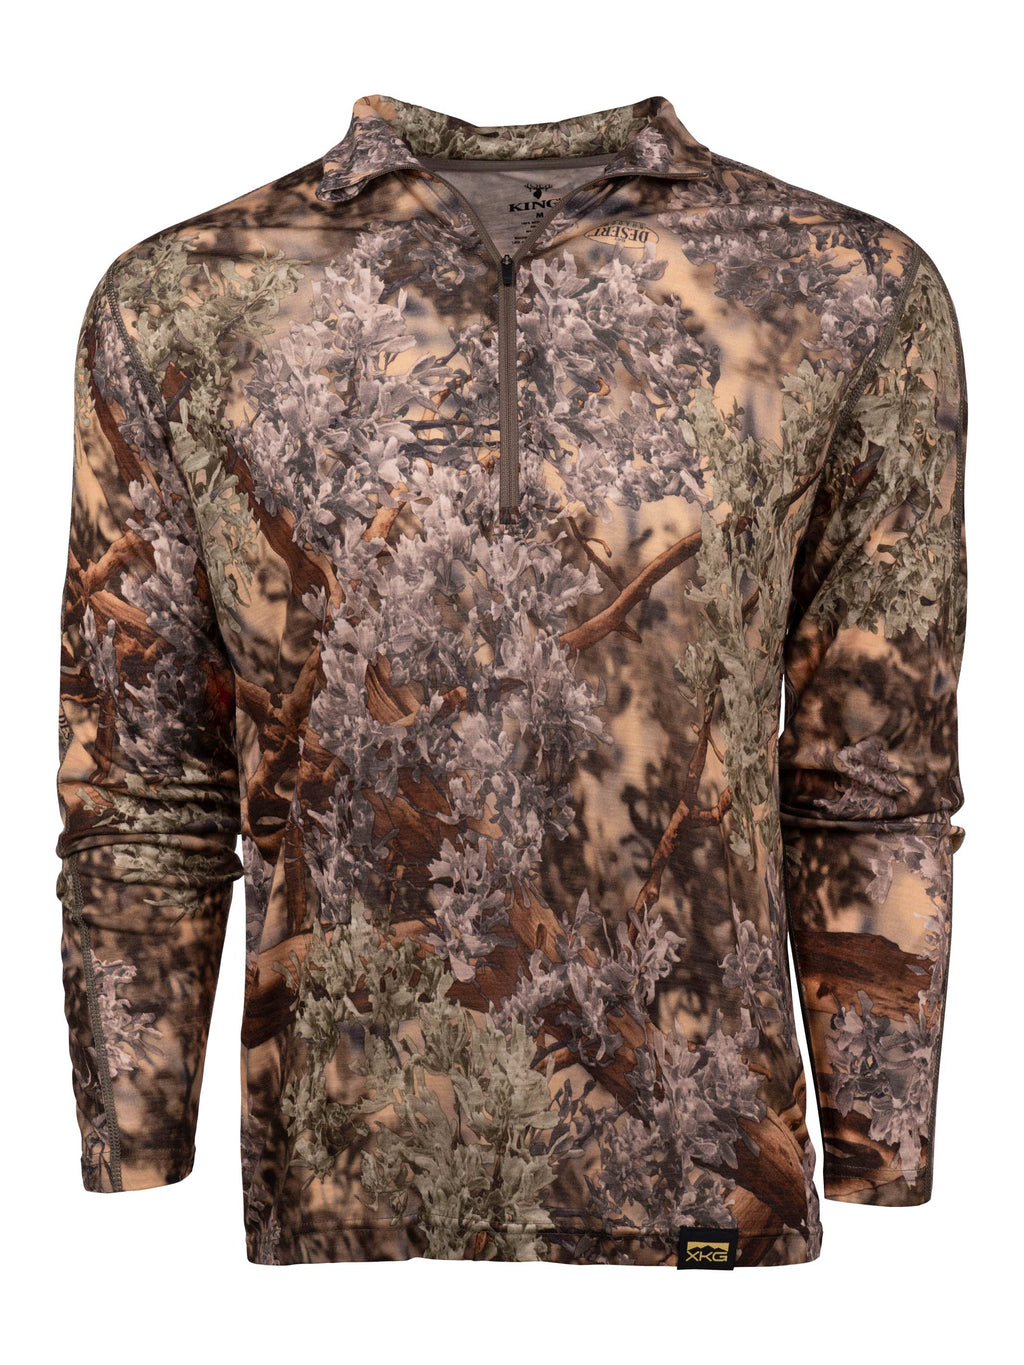 XKG Foundation 150 Merino 1/4 Zip in Desert Shadow | King's Camo